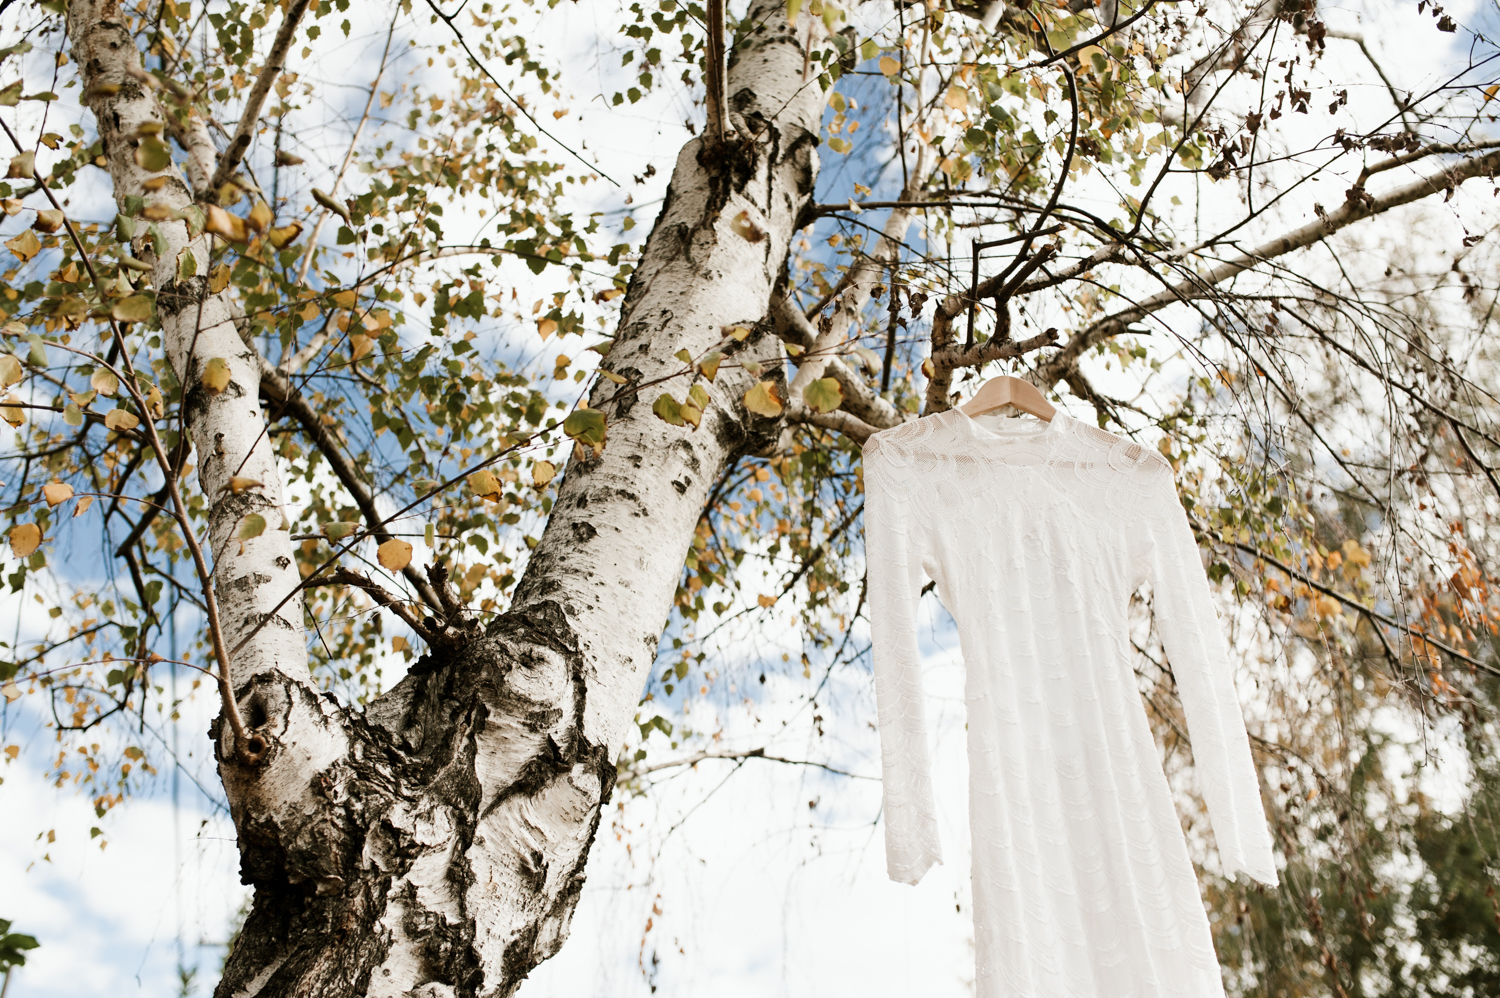 Bohemian white lace wedding dress hanging from a birch tree. By Chico Wedding Photographer Briana Morrison